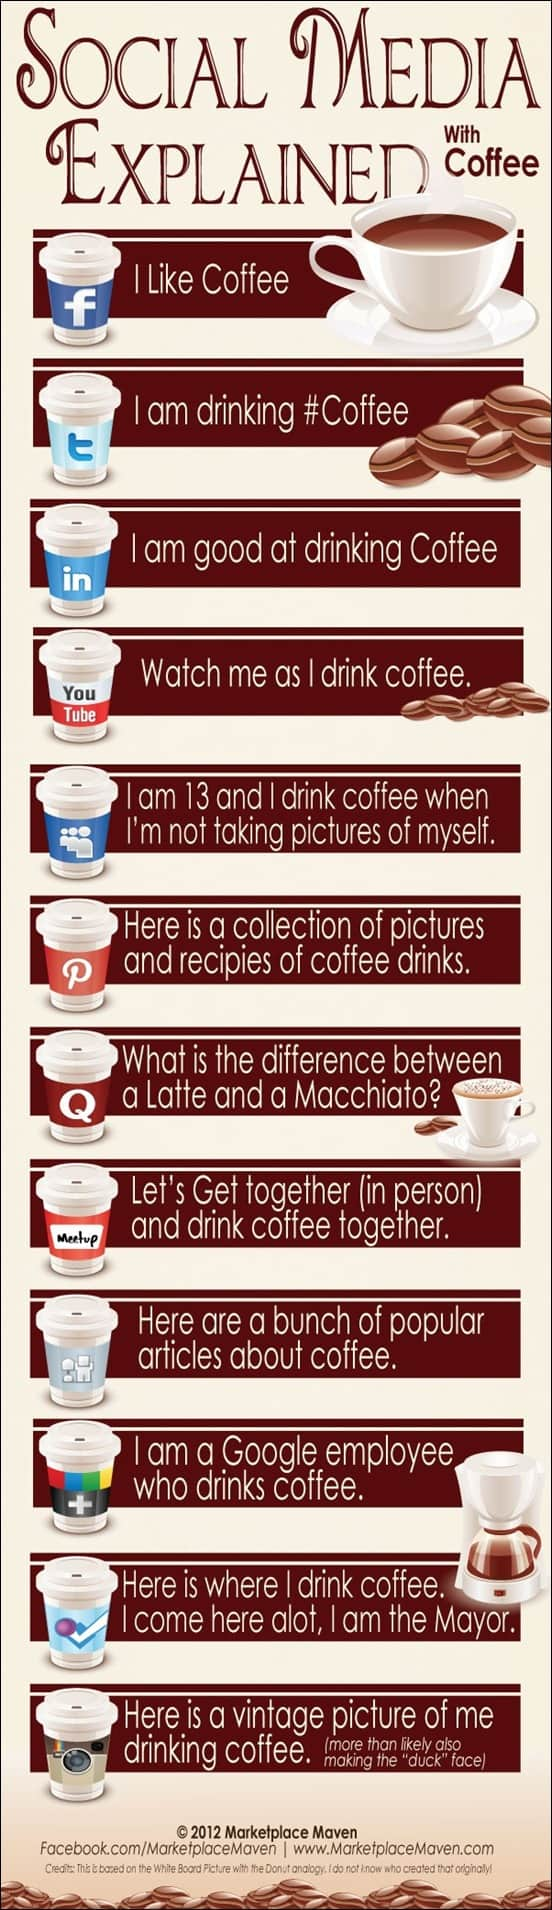 social-media-explained-with-coffee